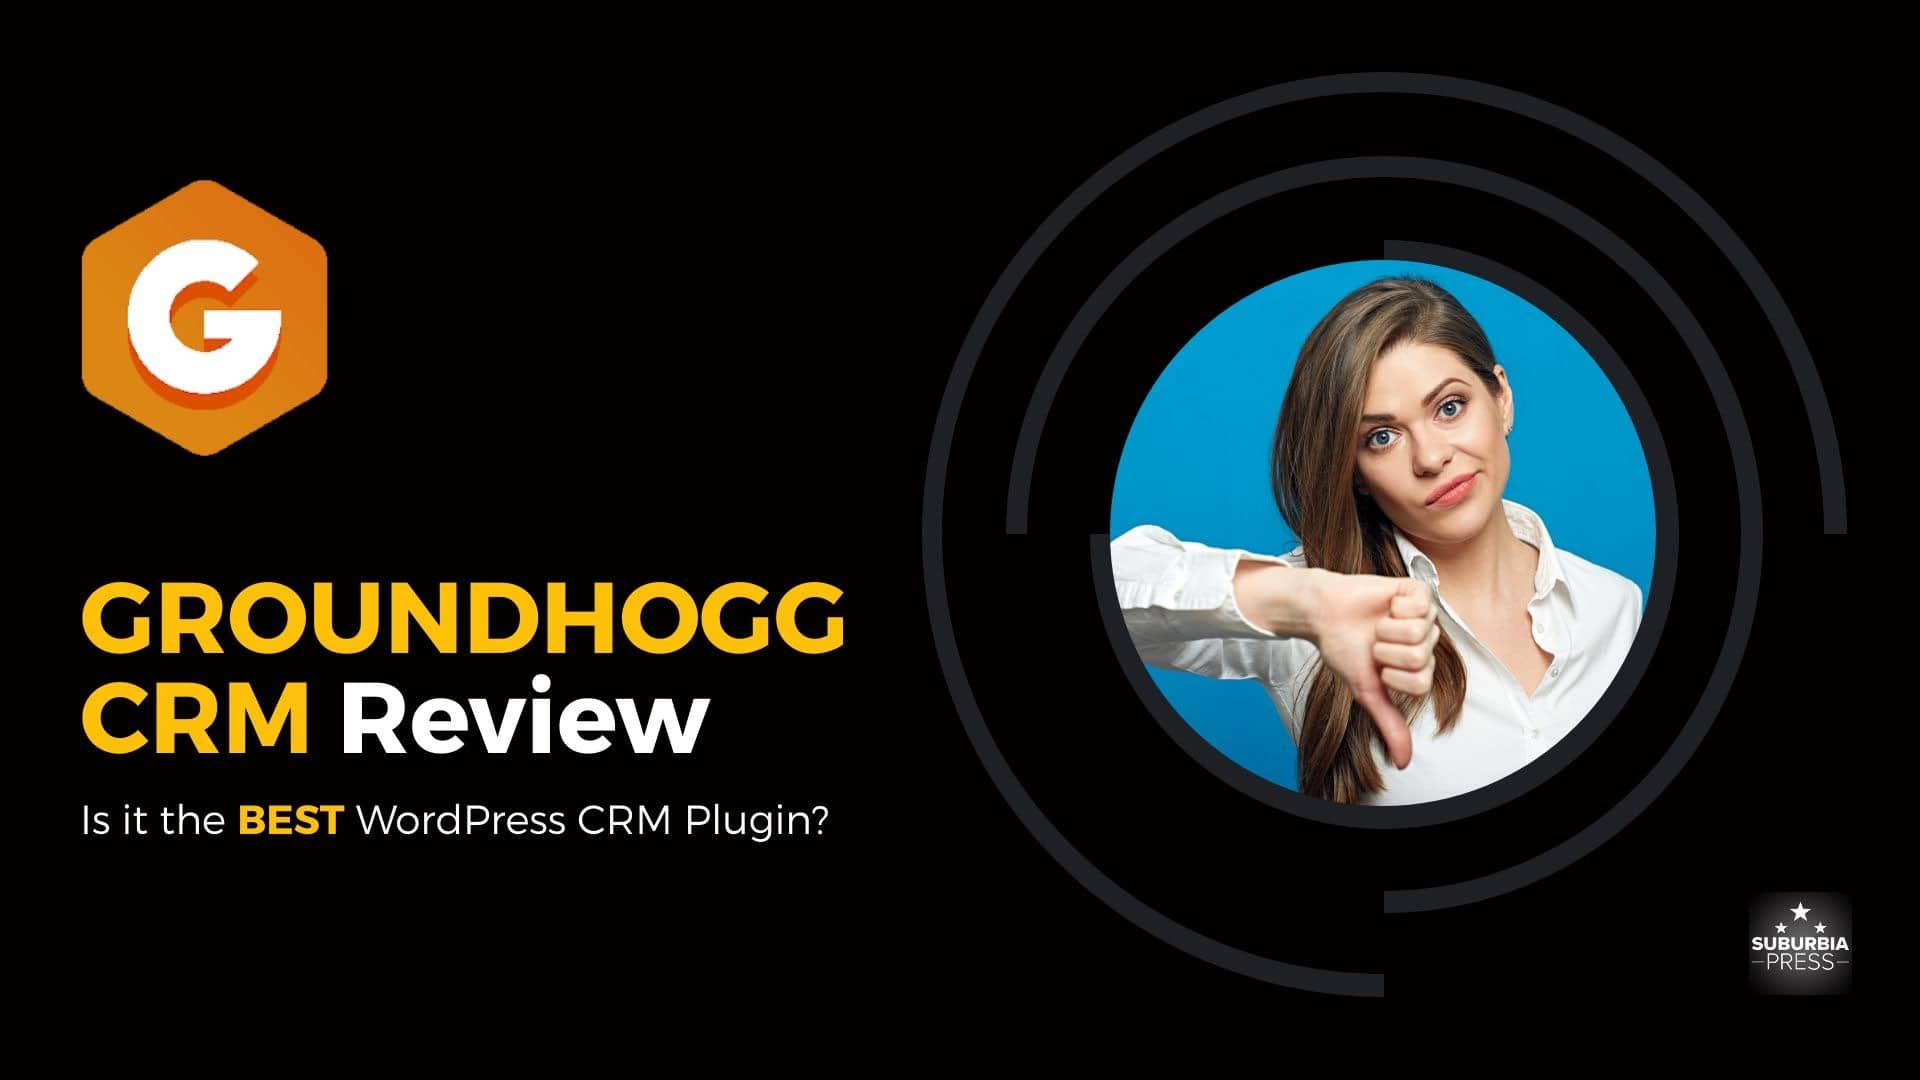 Groundhogg CRM Review